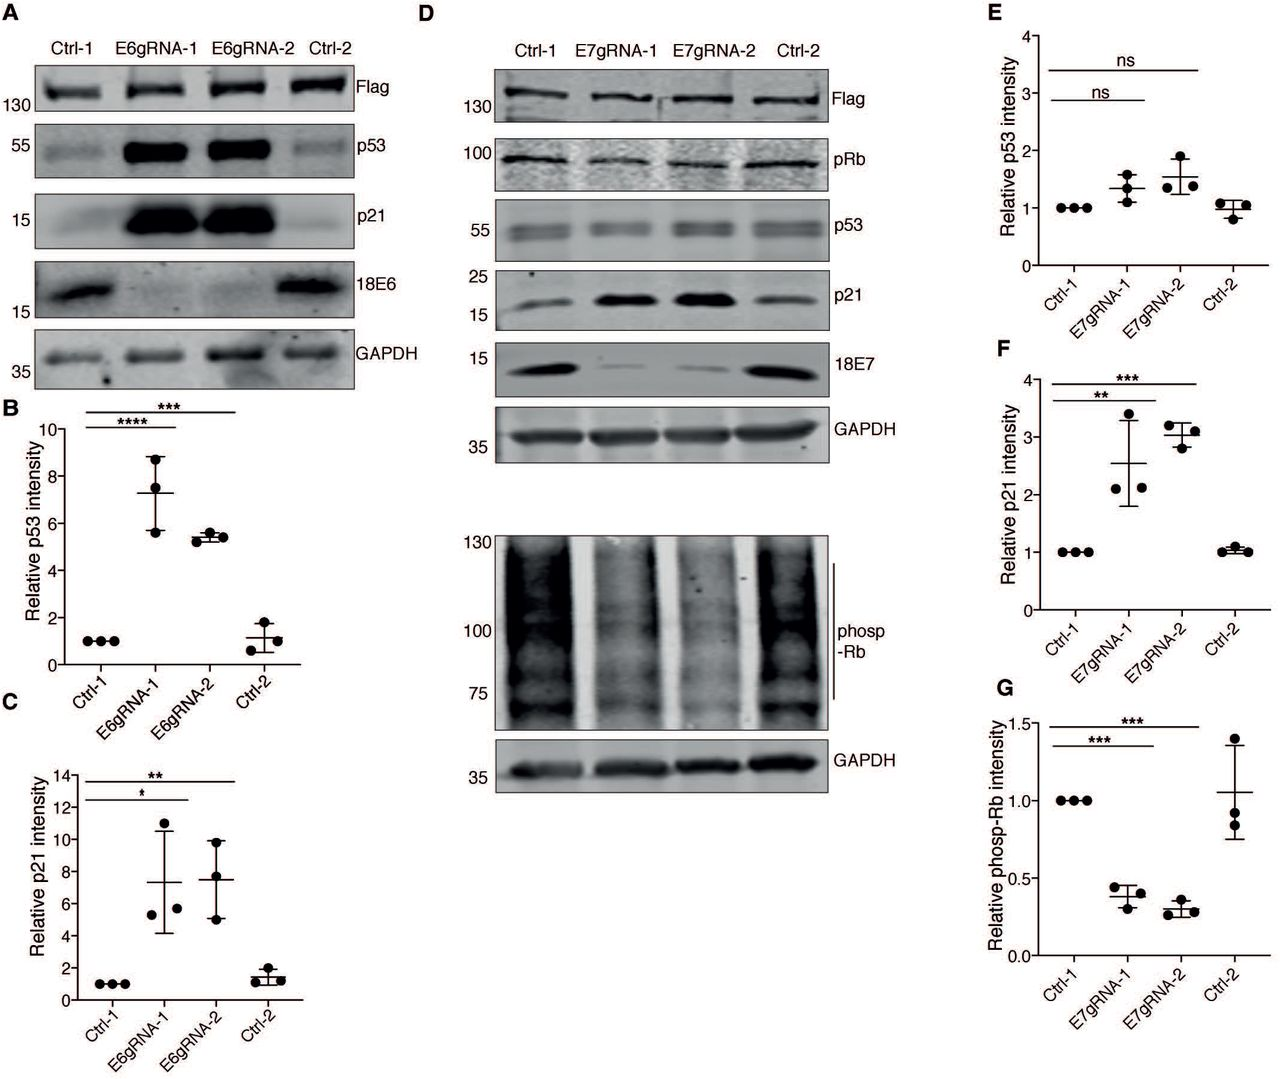 HPV18 E6 and E7 knockout restores p53 and pRb tumor suppressor pathways. (A) HeLa cells expressing only Cas9 (Ctrl-1), Cas9 with 18 E6 specific gRNAs (E6gRNA-1 and E6gRNA-2) and Cas9 with non-specific gRNA (Ctrl-2) were analyzed by western blot. The blot was probed to detect Flag-tagged Cas9 protein, p53, p21, HPV18 E6 and GAPDH. Representative image of three independent experiments is shown. Quantification of endogenous p53 and p21 levels were performed and relative intensities were plotted for the respective experiment in panel and (C). (D) Western blot analysis of protein lysates from cells treated similarly as explained in panel (A), but the gRNAs expressed were targeted for endogenous HPV18 E7 protein and the antibodies were against Flag-Cas9, retinoblastoma protein (pRb), p53, p21, and GAPDH. The lysates were re-run to detect phosphorylated-Rb (phosp-Rb). (E, F, G) The mean band intensities from three independent experiments were compared with those from Ctrl-1 and plotted versus the respective experiment. Relative intensities of (E) p53 (F) p21 (G) phosp-Rb were plotted. The error bars represent mean values with standard deviation. * P